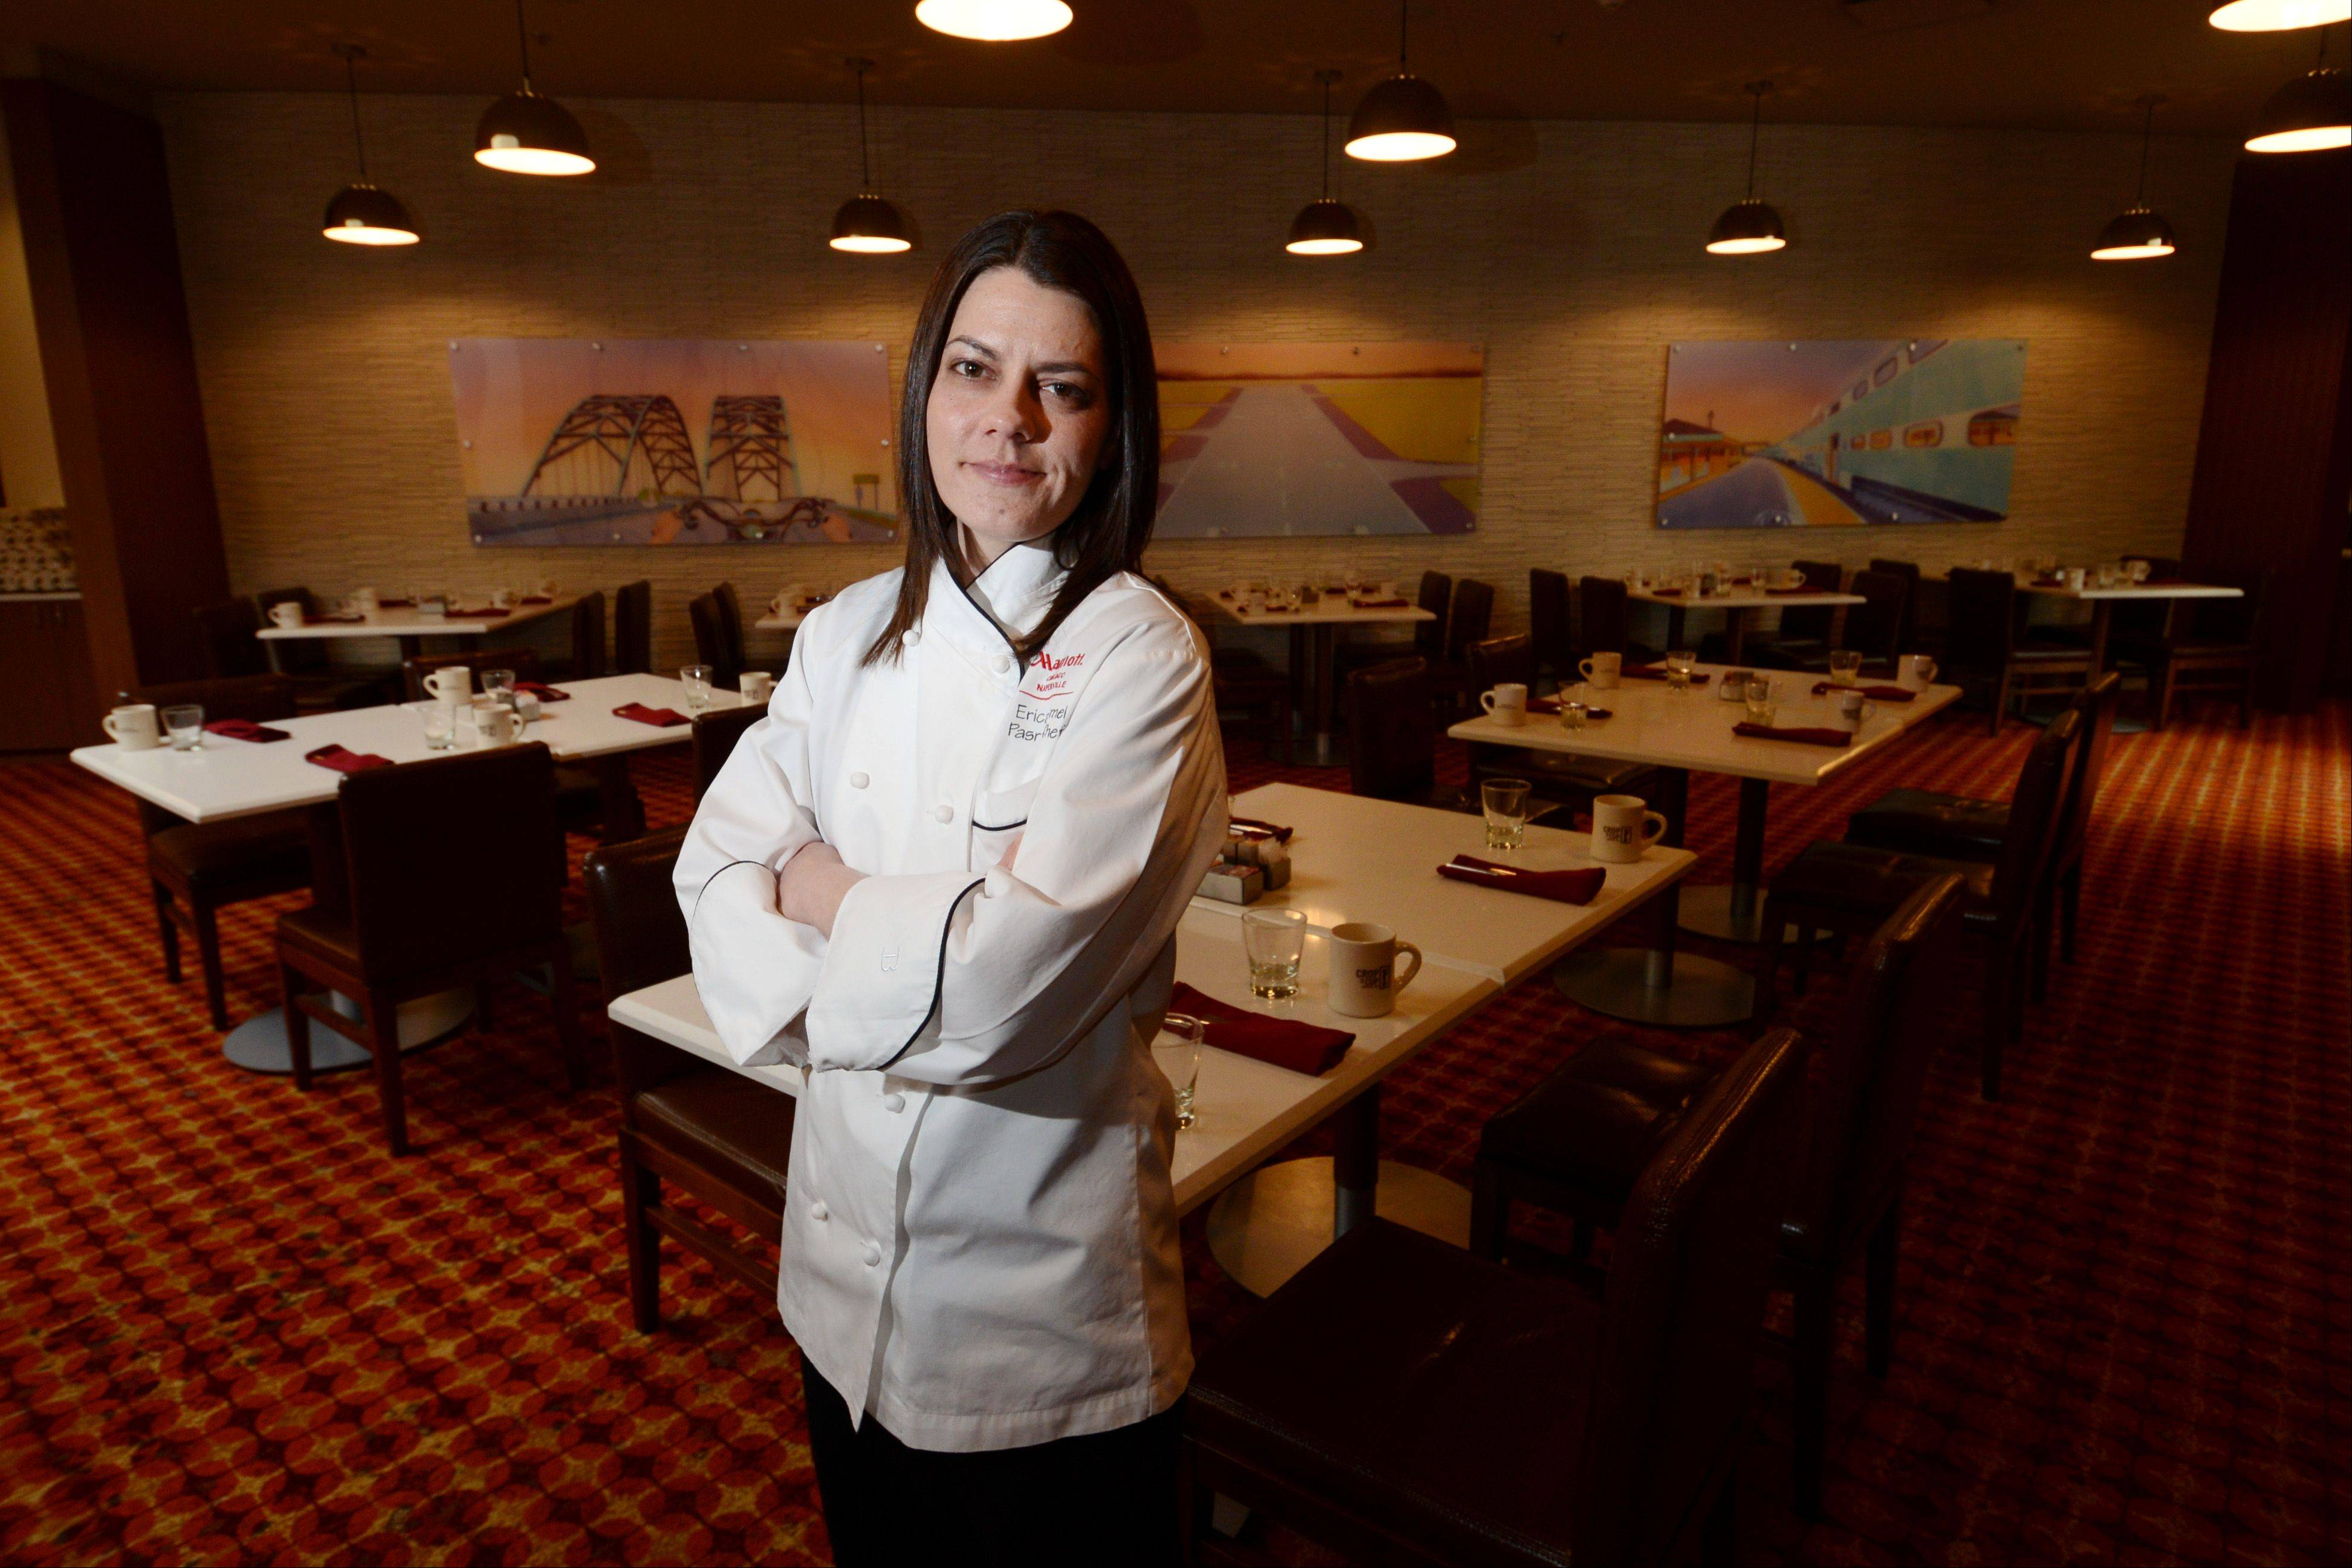 Erica Tomei runs the pastry kitchens at the Chicago Marriott Naperville.